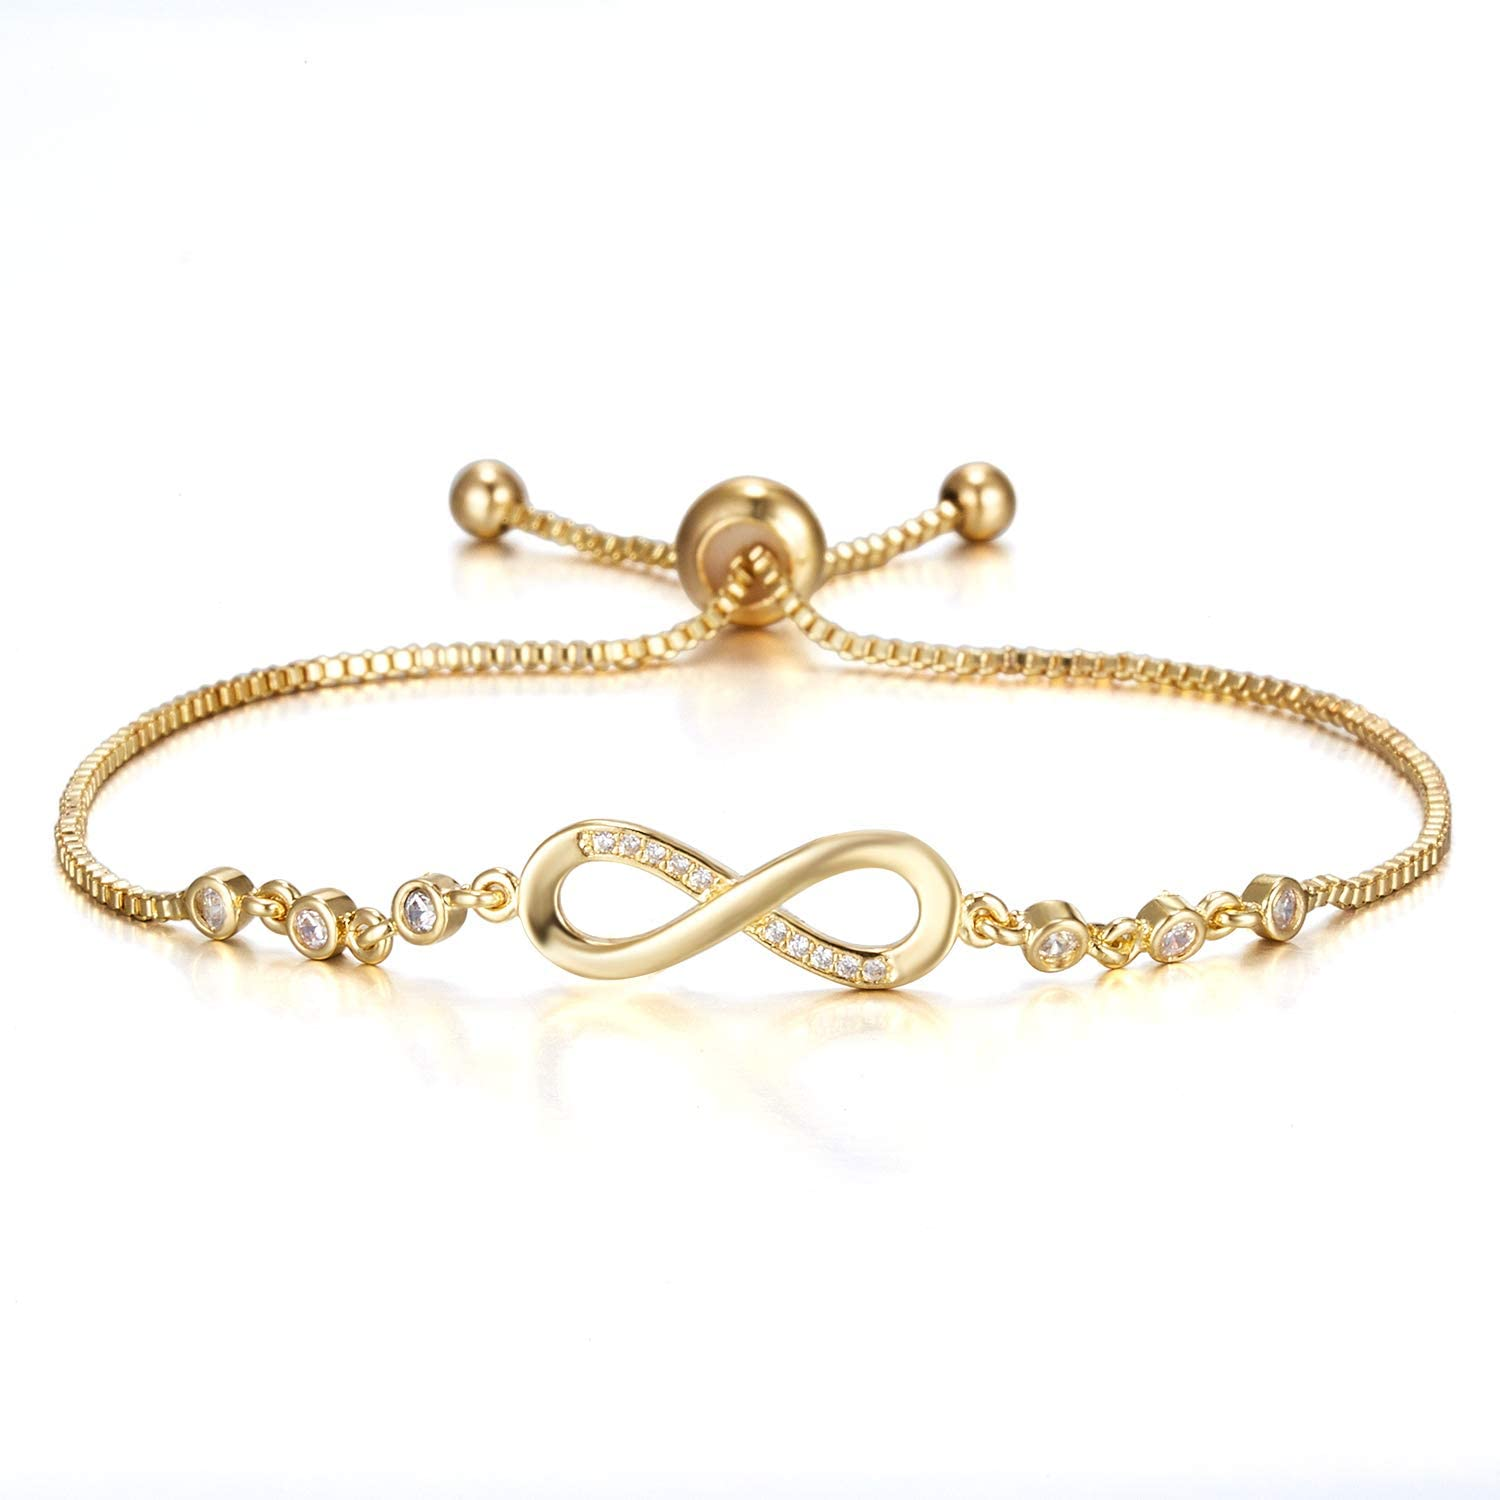 Tulsa Mall BELLA-Bee Infinity Outlet SALE Couple Bracelet 14K Endless Gold Love Plated